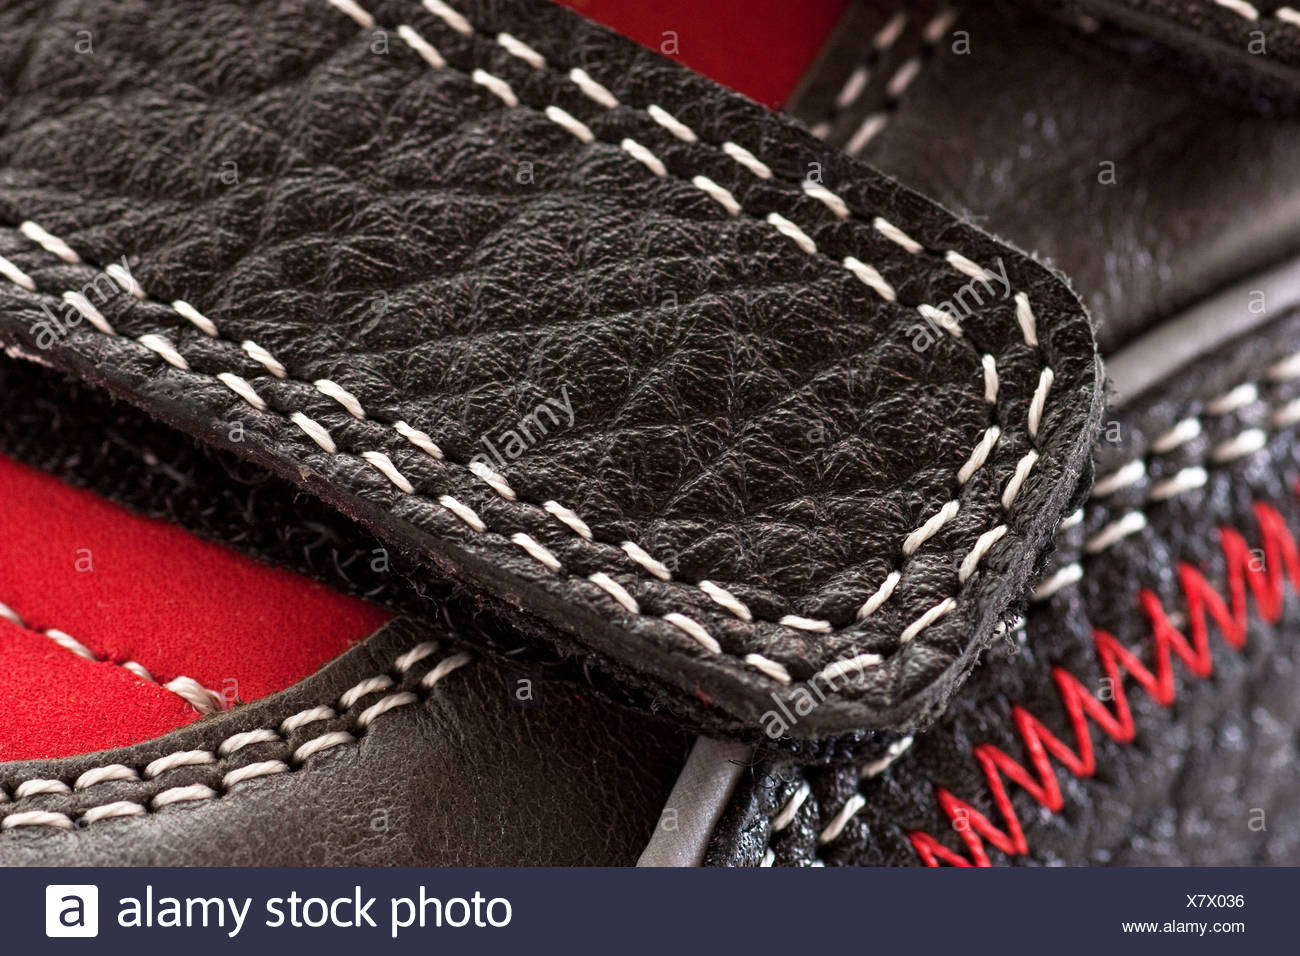 Macro view of velcro on a child shoe - Stock Image